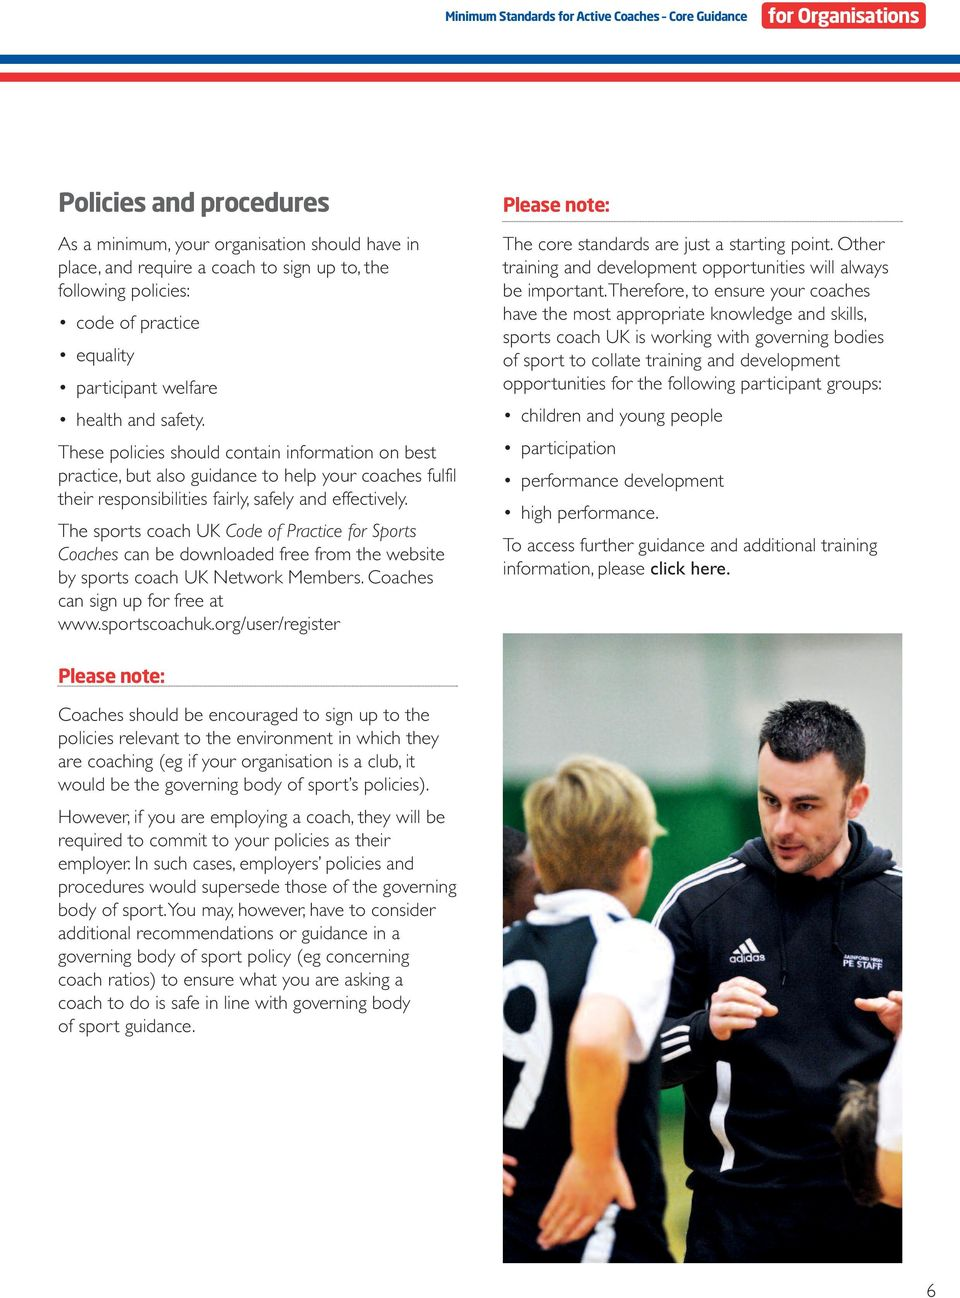 These policies should contain information on best practice, but also guidance to help your coaches fulfil their responsibilities fairly, safely and effectively.